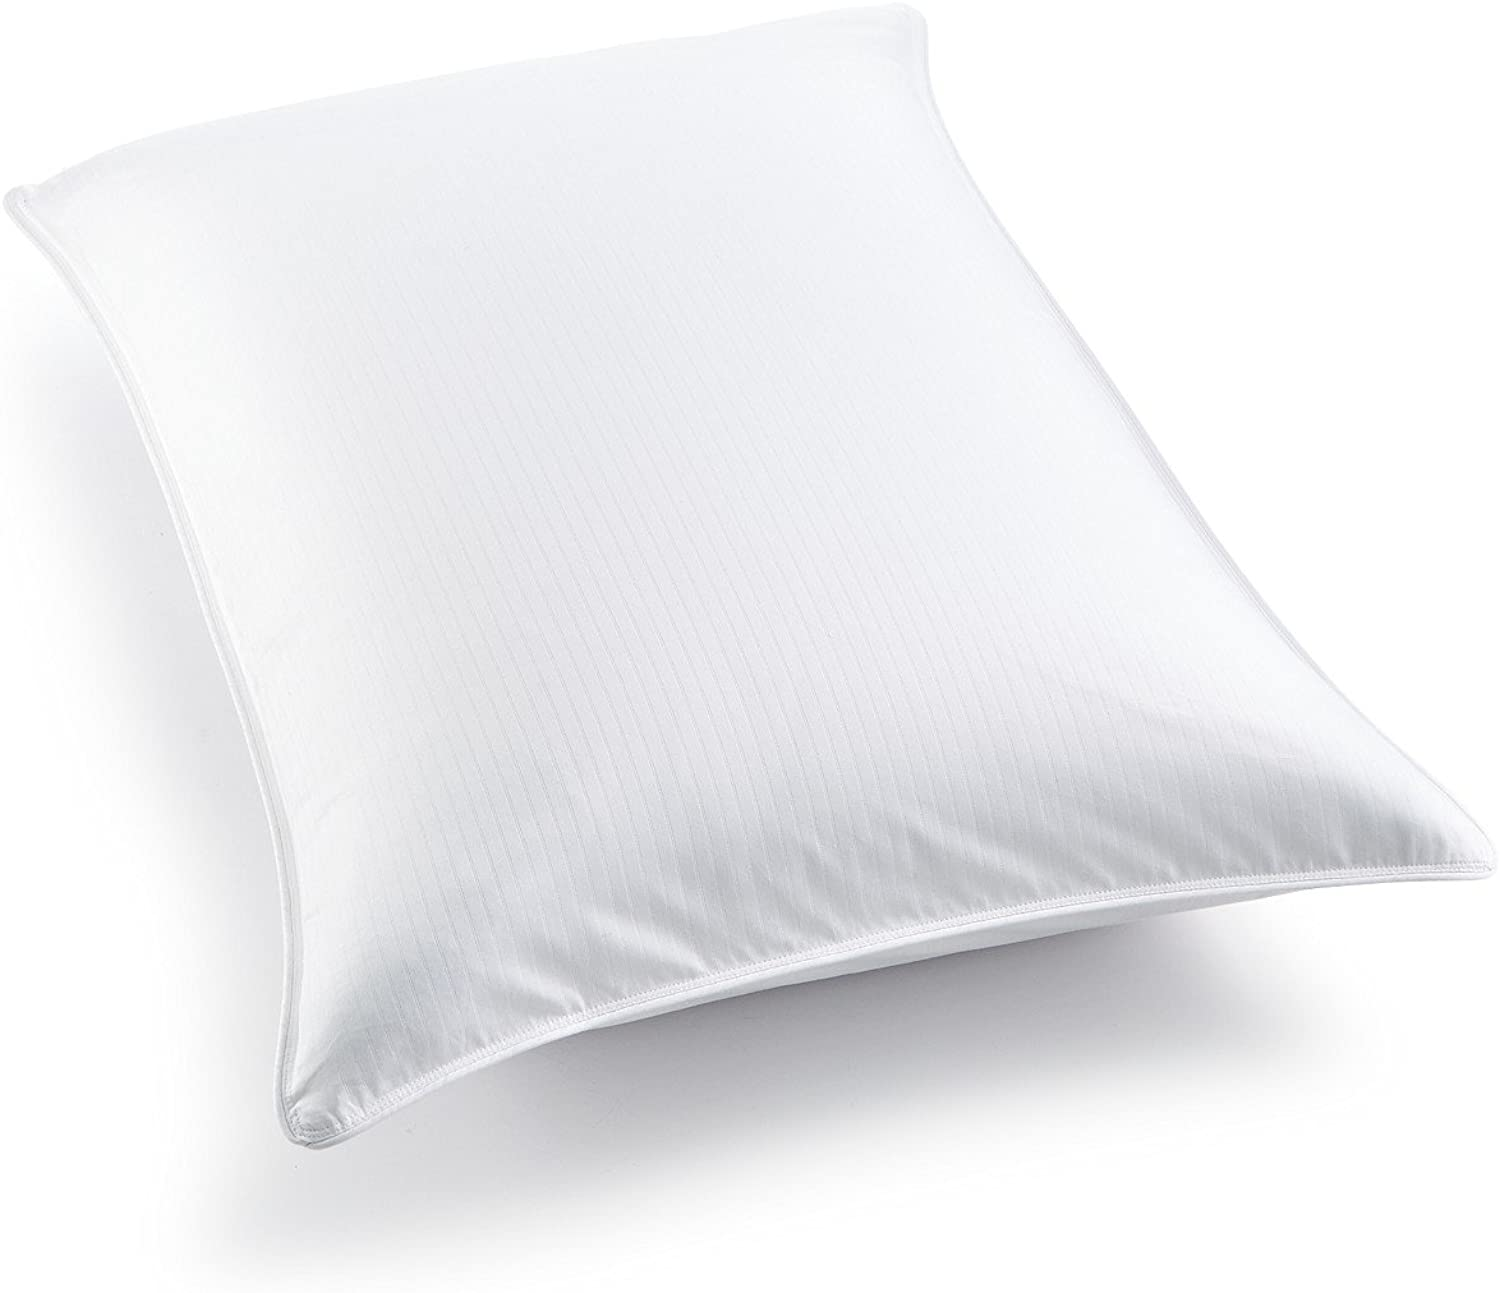 Charter Club European White Down Firm Pillow with Removable Cotton Cover - Hypoallergenic Ultraclean down